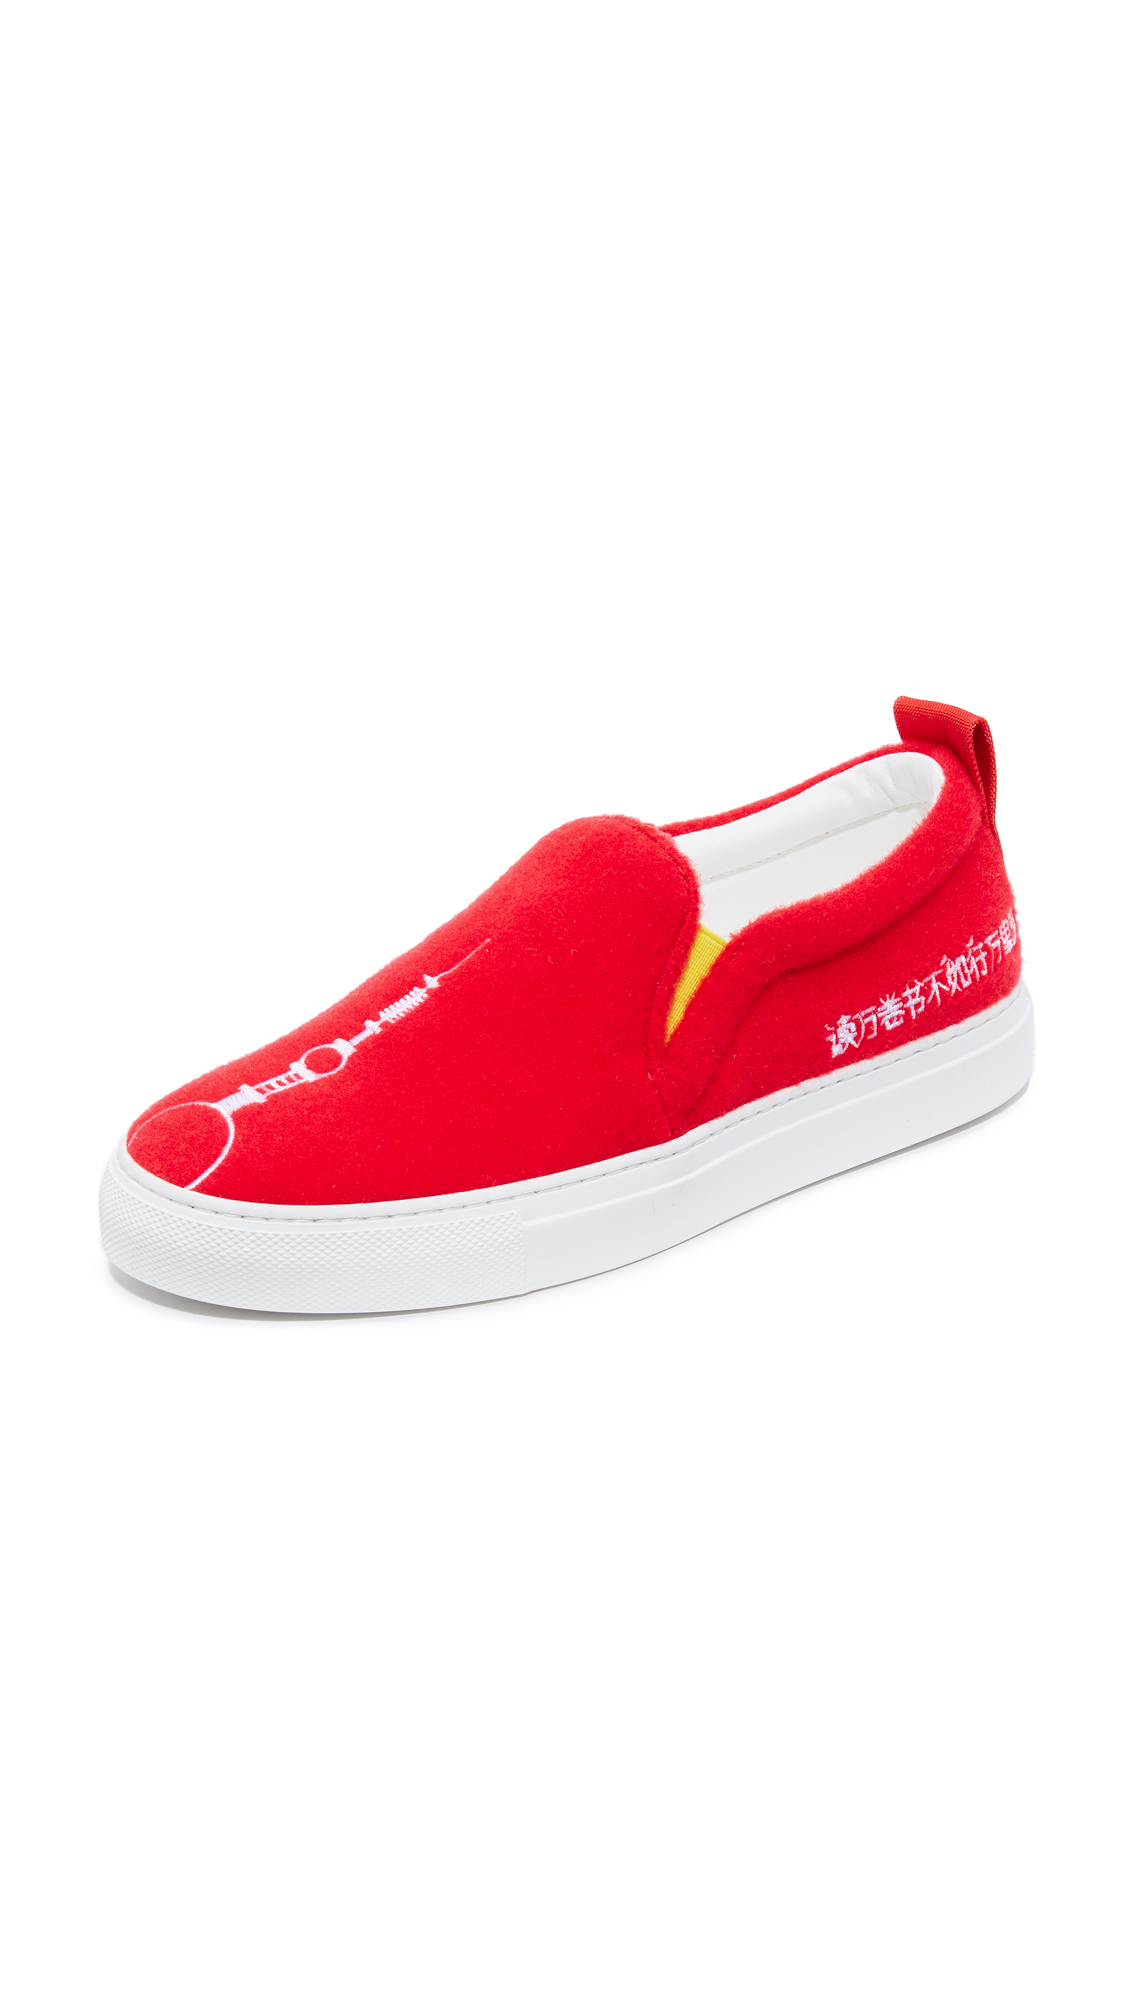 Joshua Sanders Shanghai Slip On Sneakers